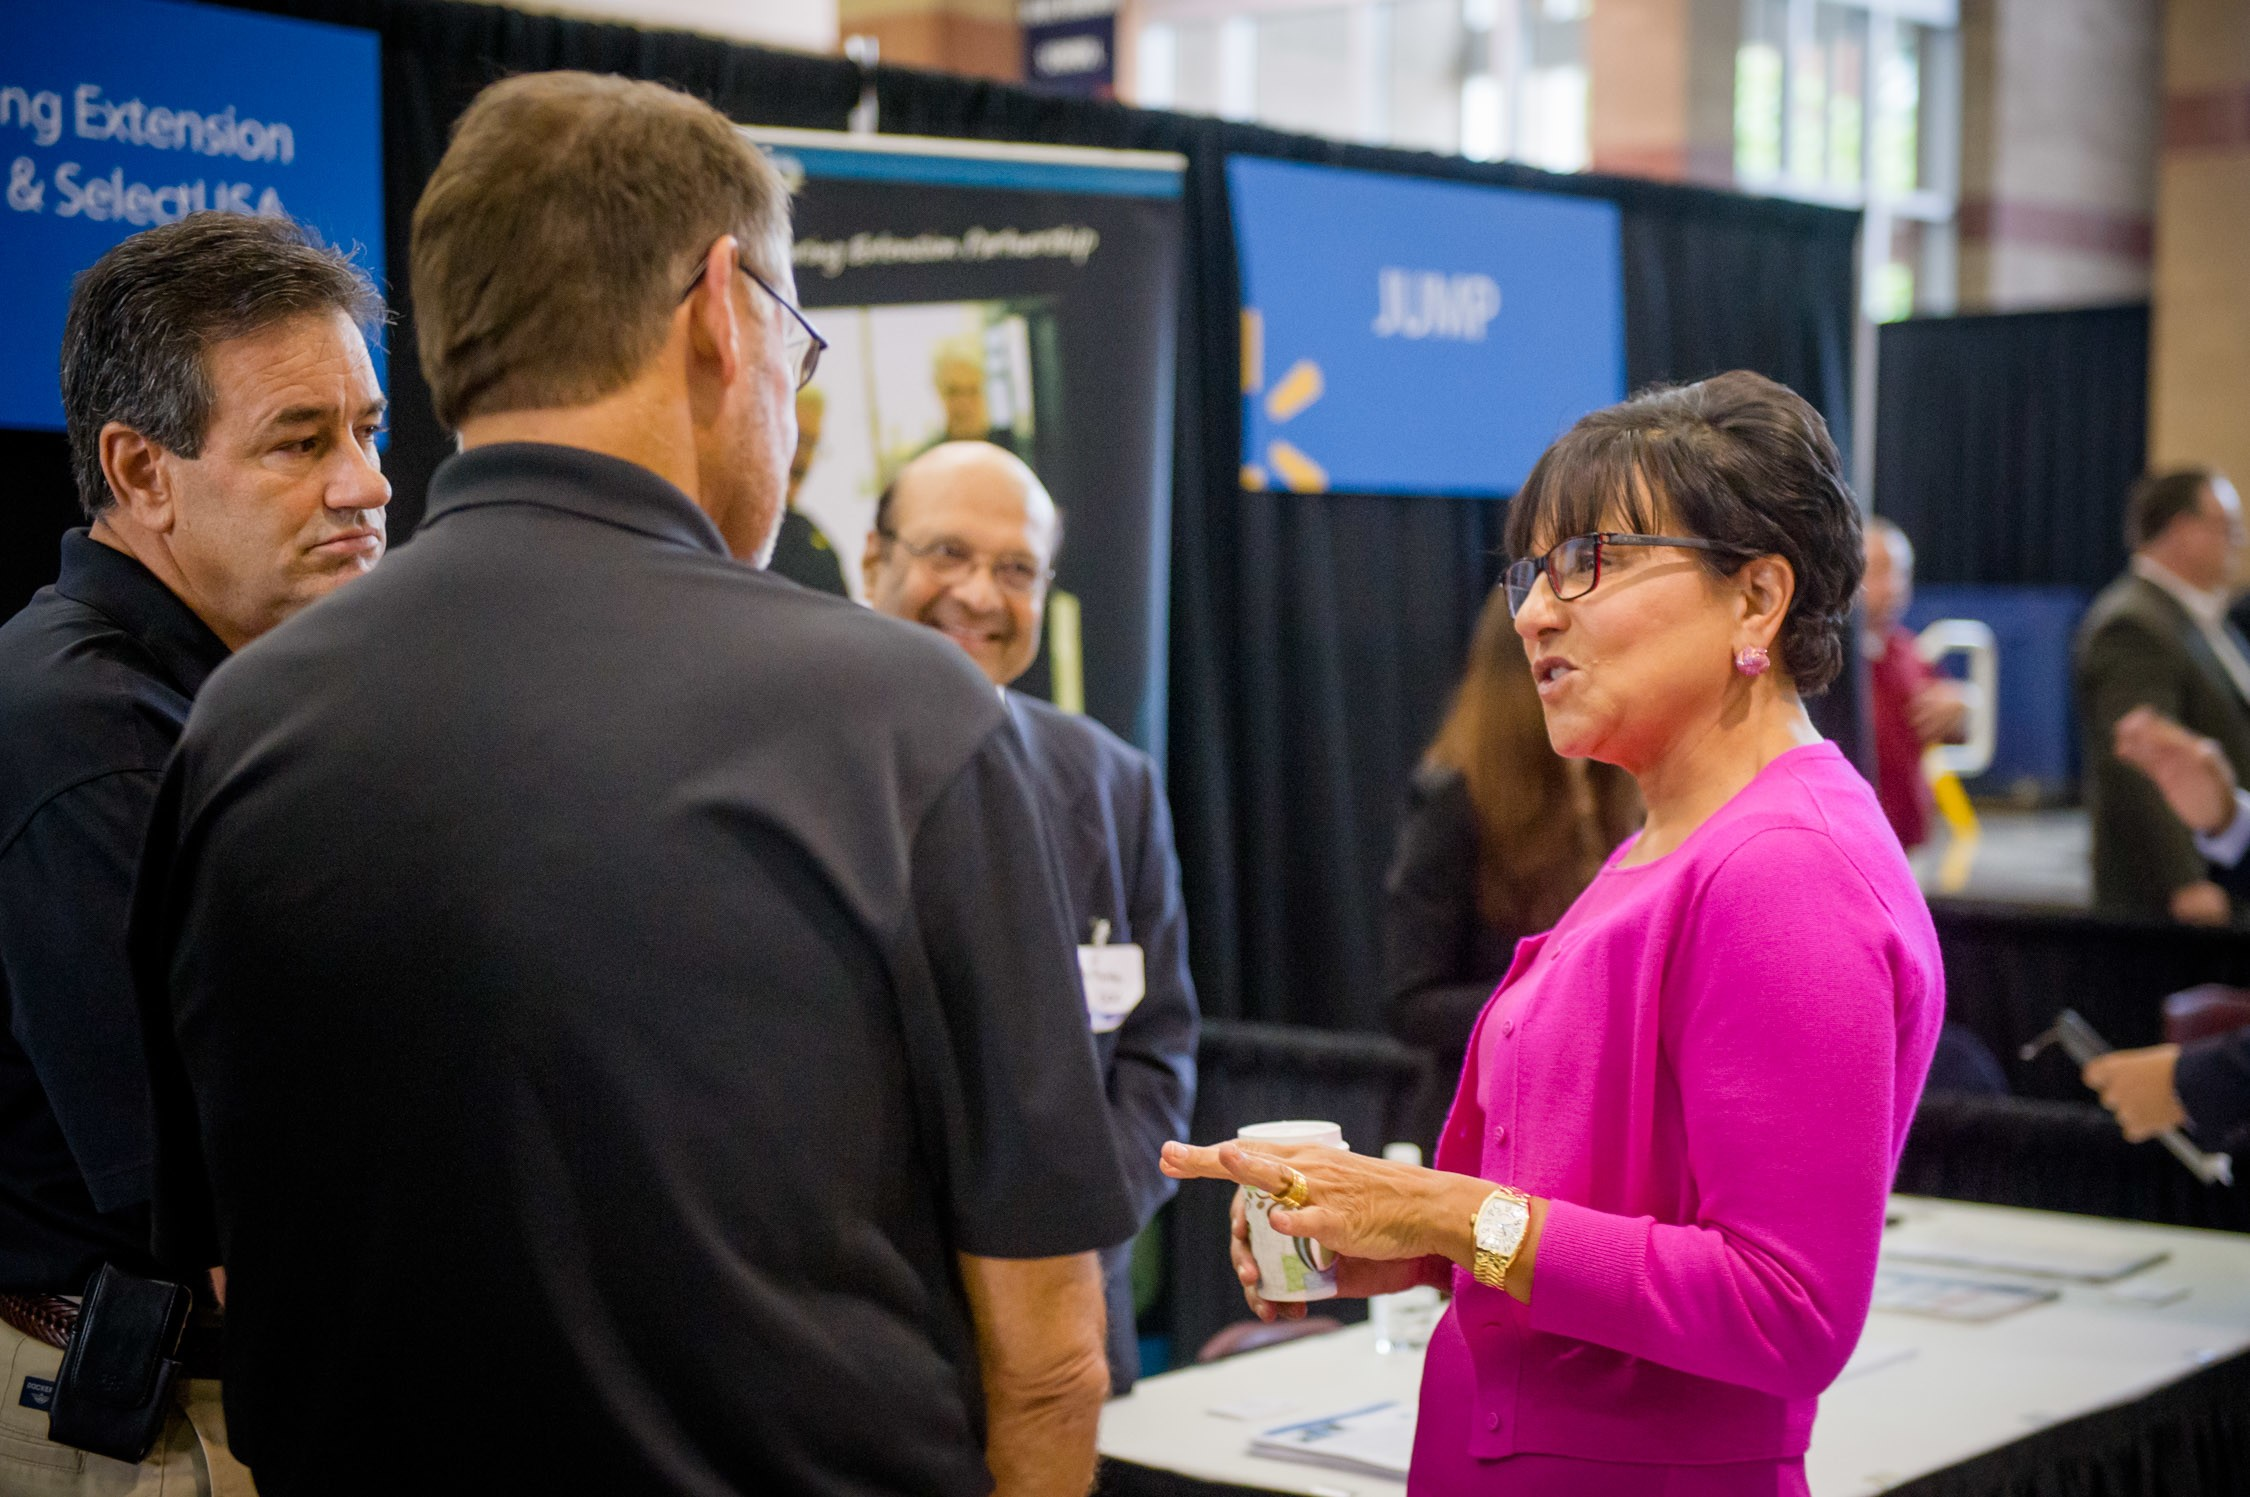 U.S. Secretary of Commerce Penny Pritzker with 2015 U.S. Manufacturing Summit Attendees